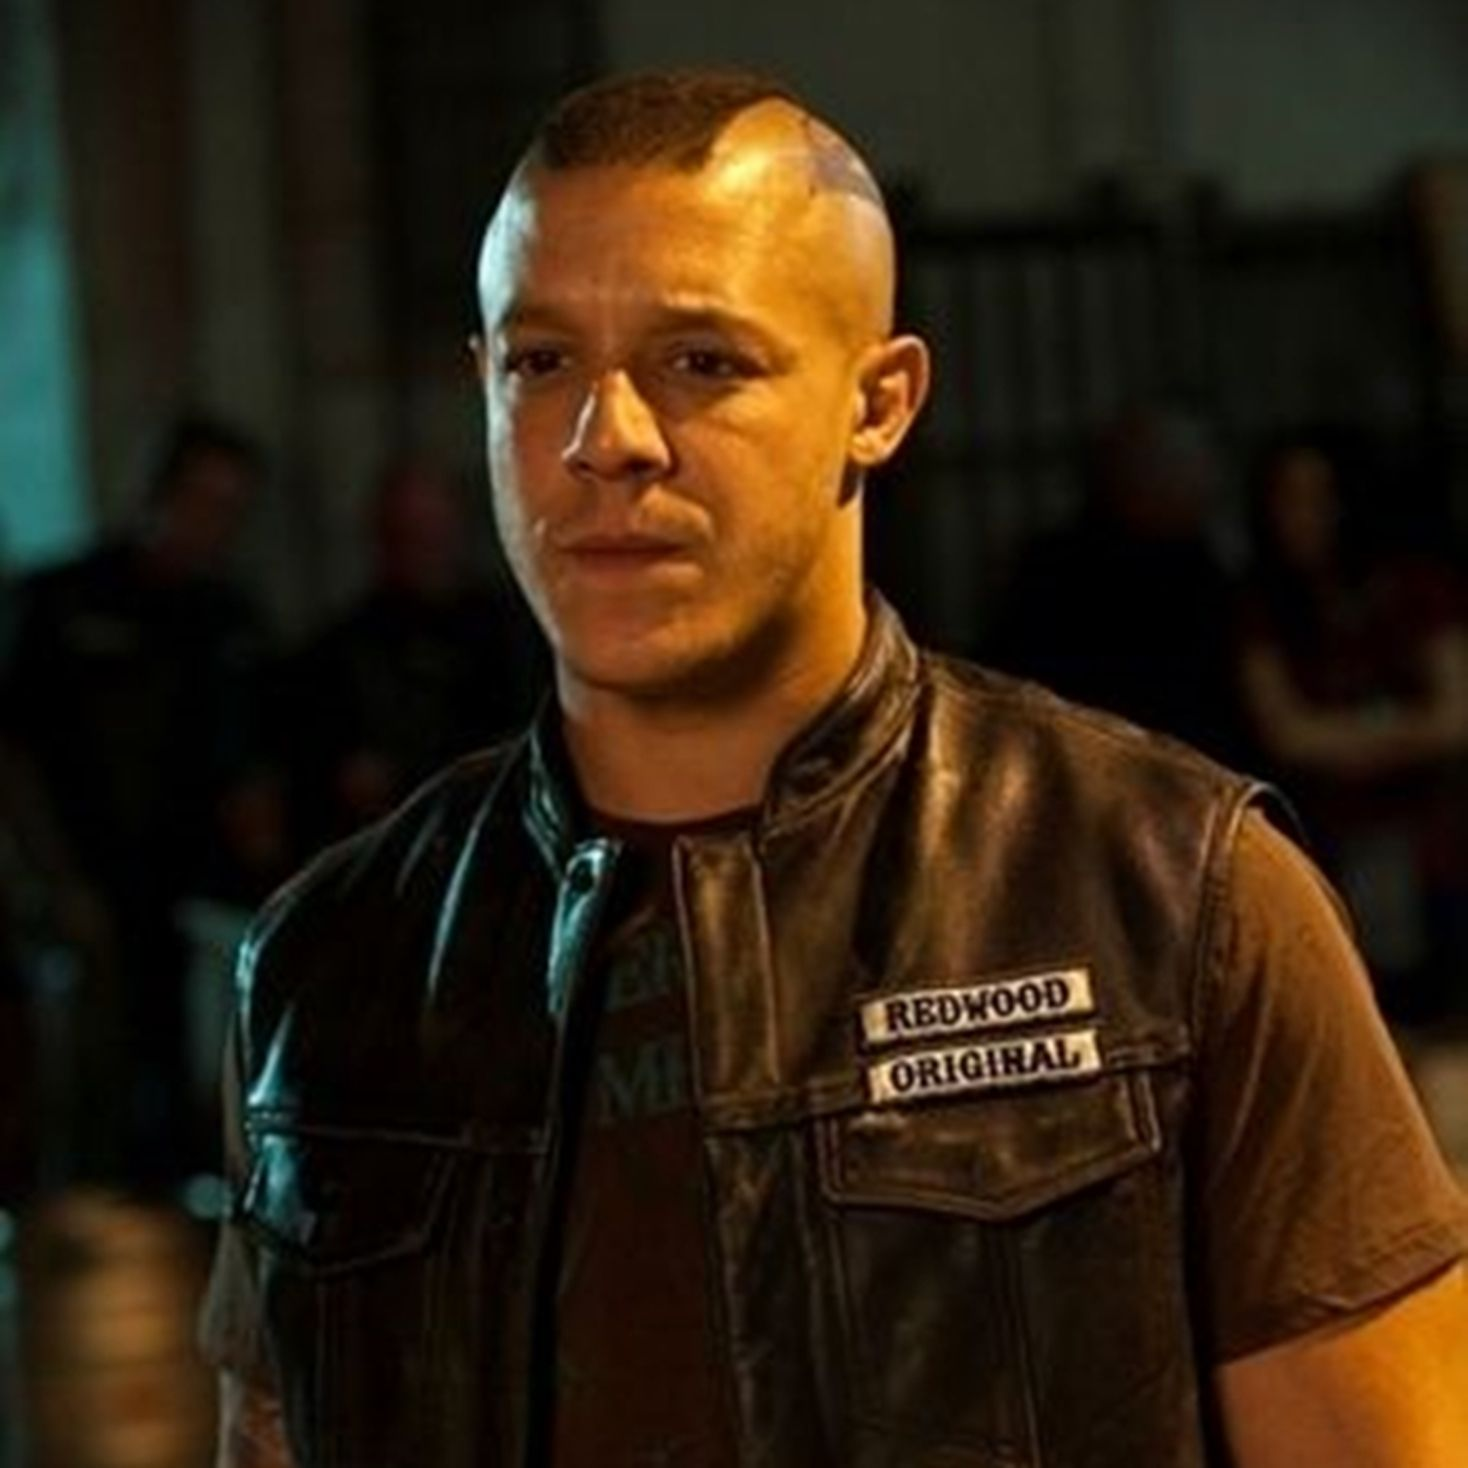 Sons Of Anarchy Samcro Juan Carlos Ortiz Juice Theo Rossi Sons Of Anarchy Hijos De La Anarquia Actores